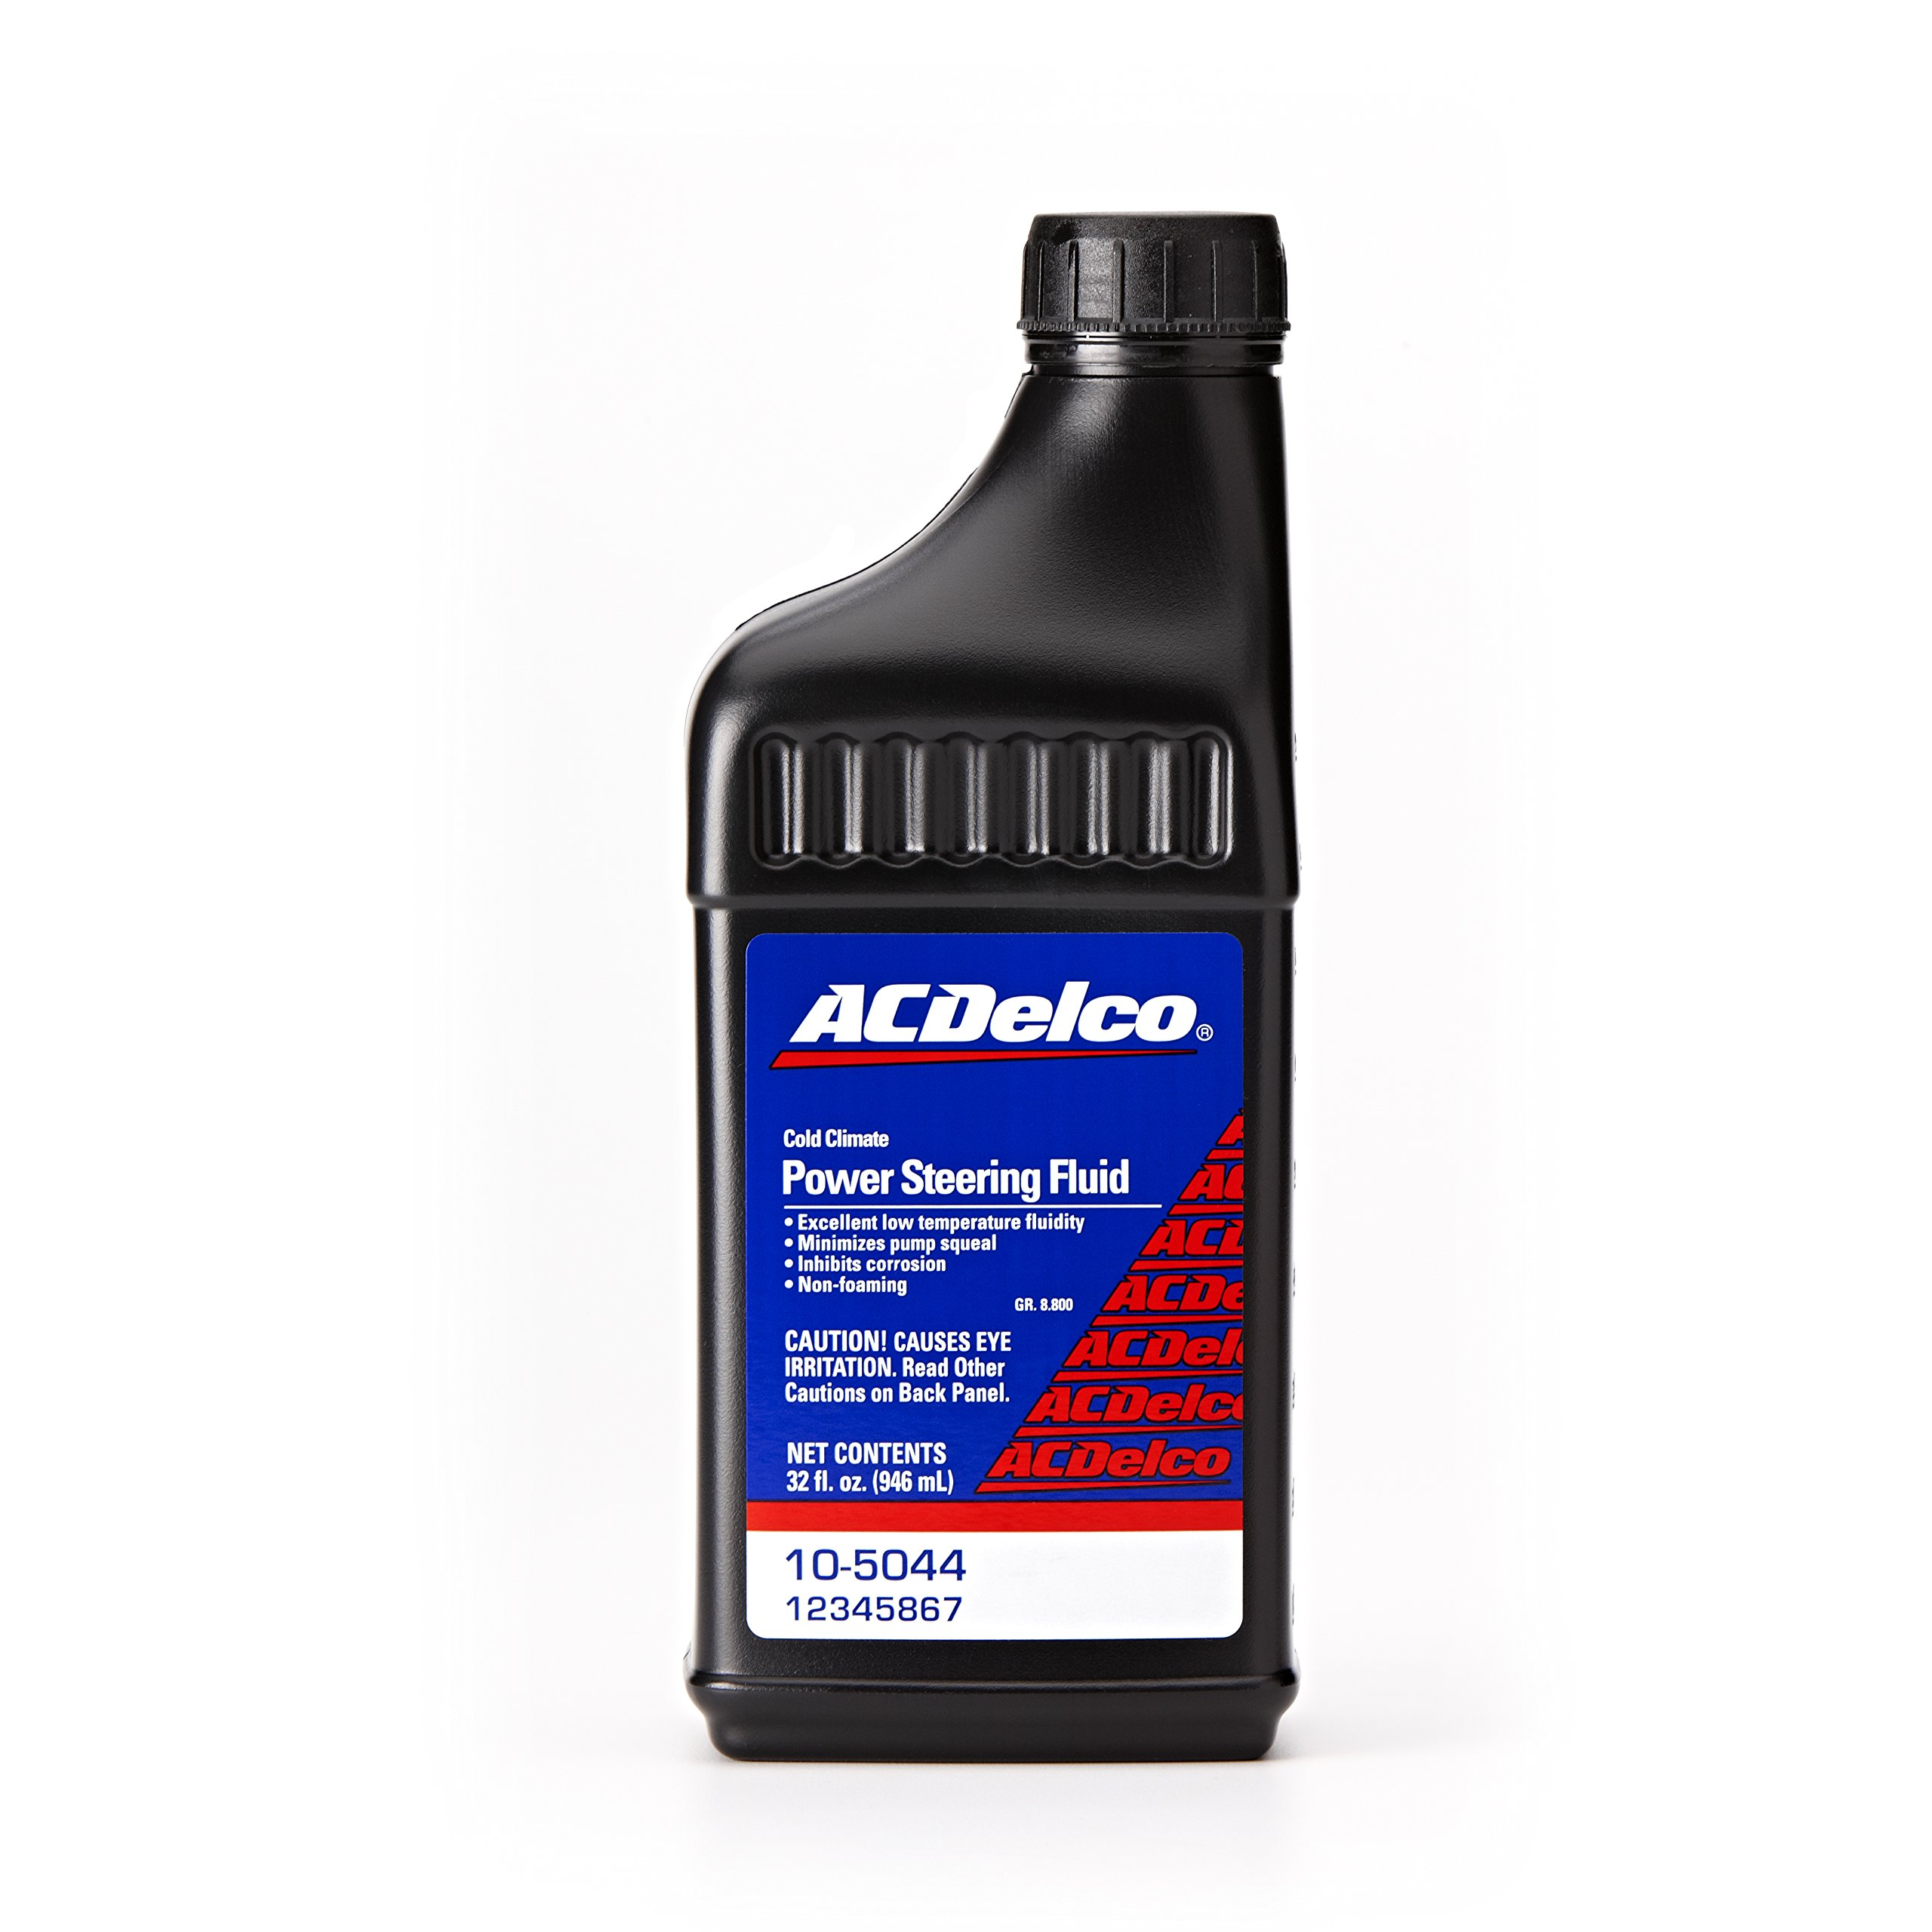 ACDelco 10-5044 Cold Climate Power Steering Fluid - 32 oz